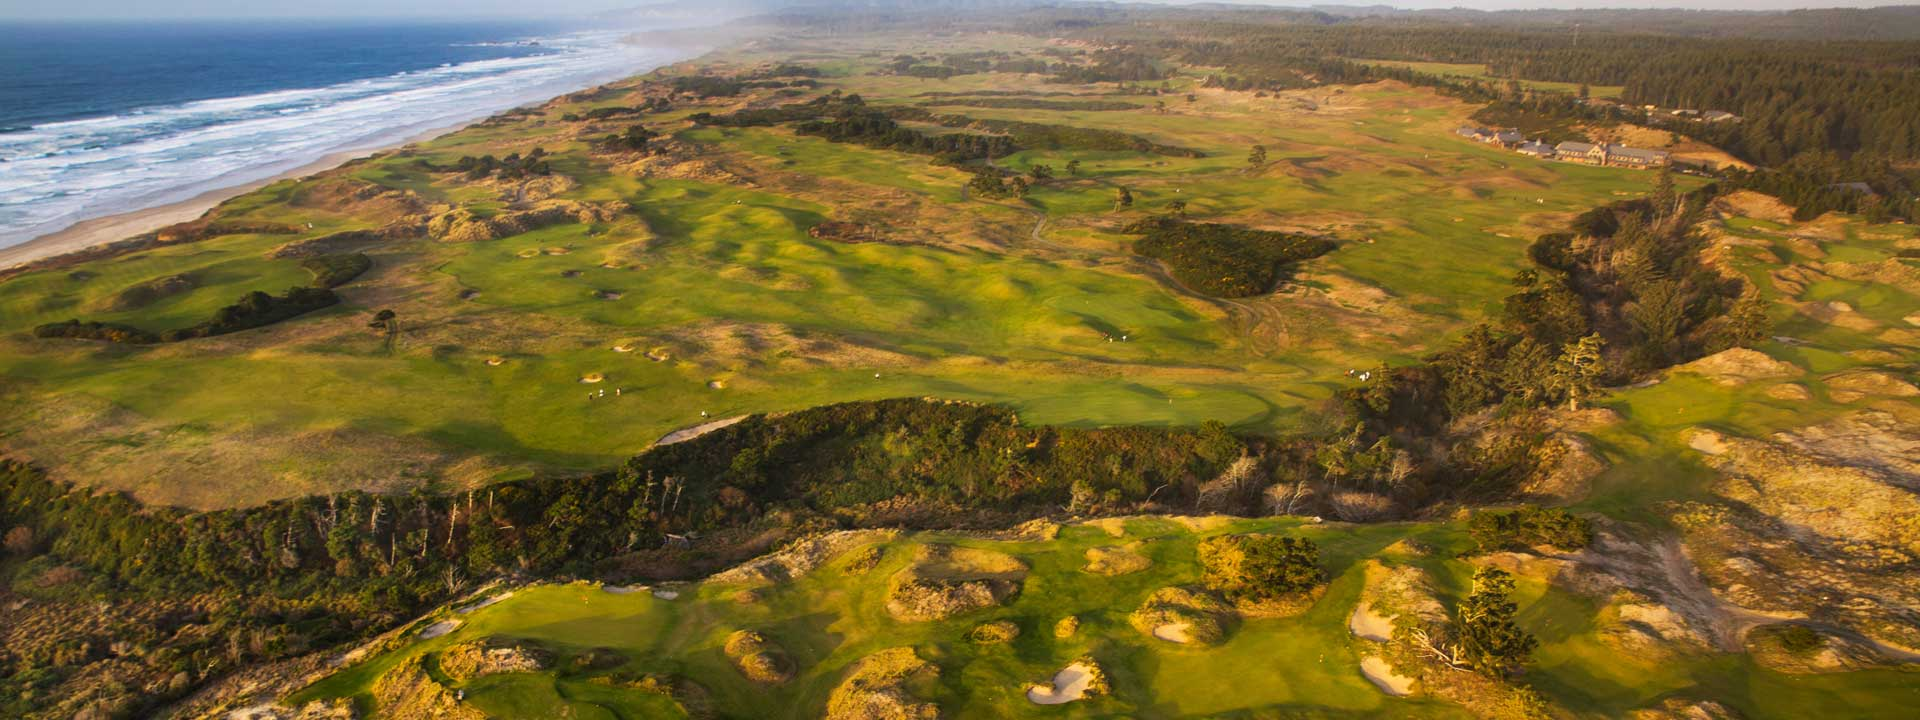 Bandon Dunes Golf Resort occupies an incredible stretch of the Oregon coastline.